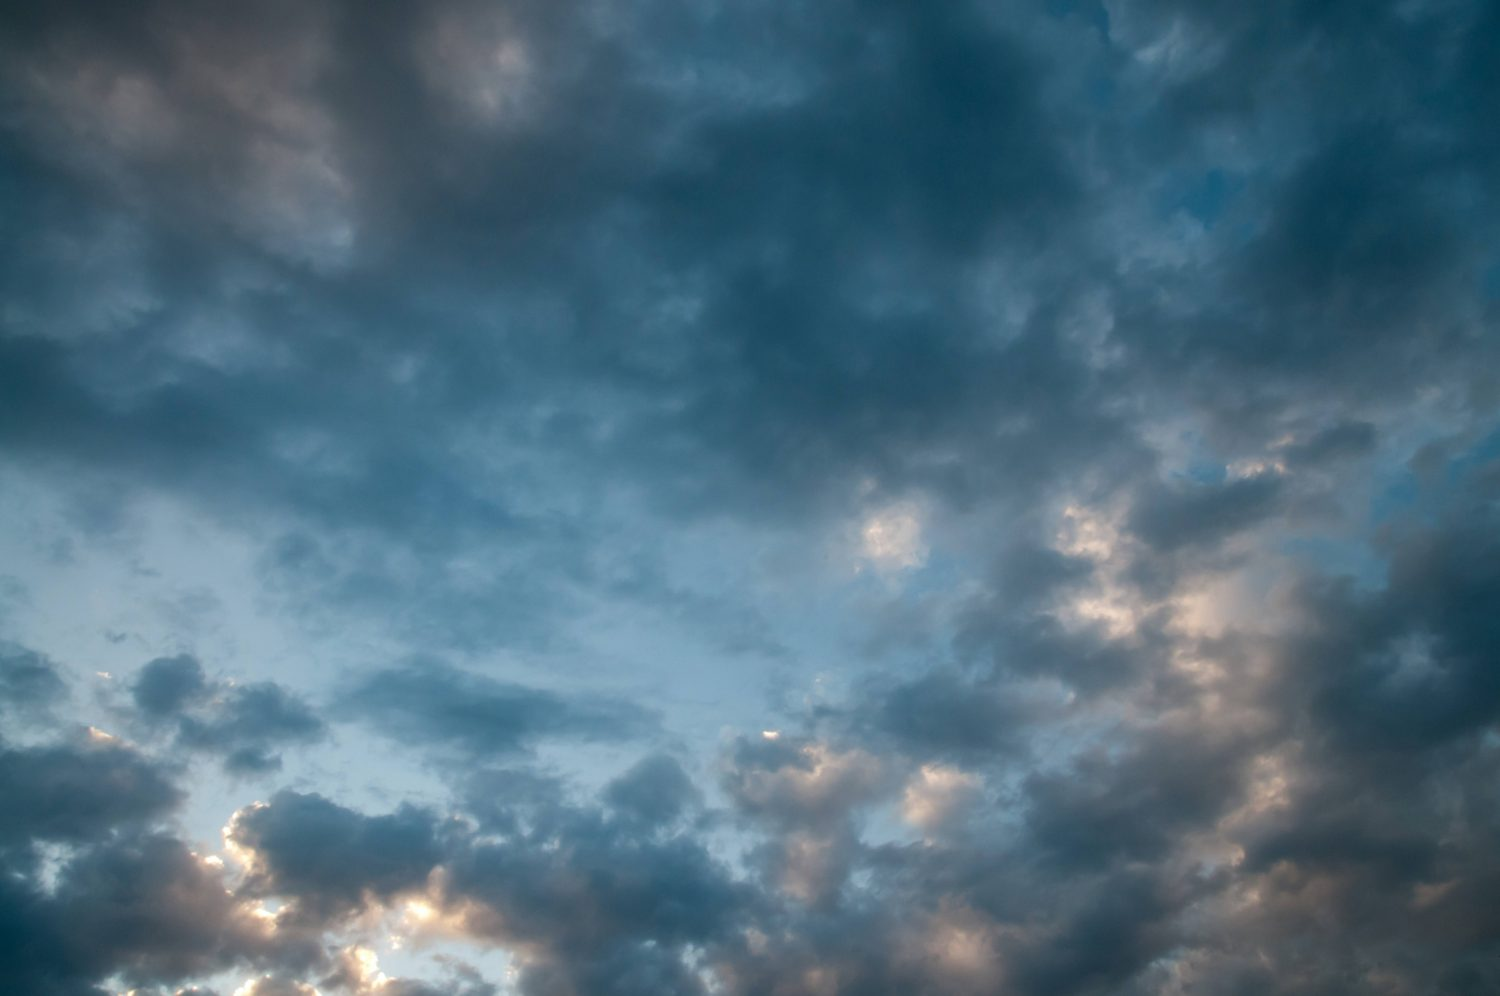 Dark small clouds in front of blue sky